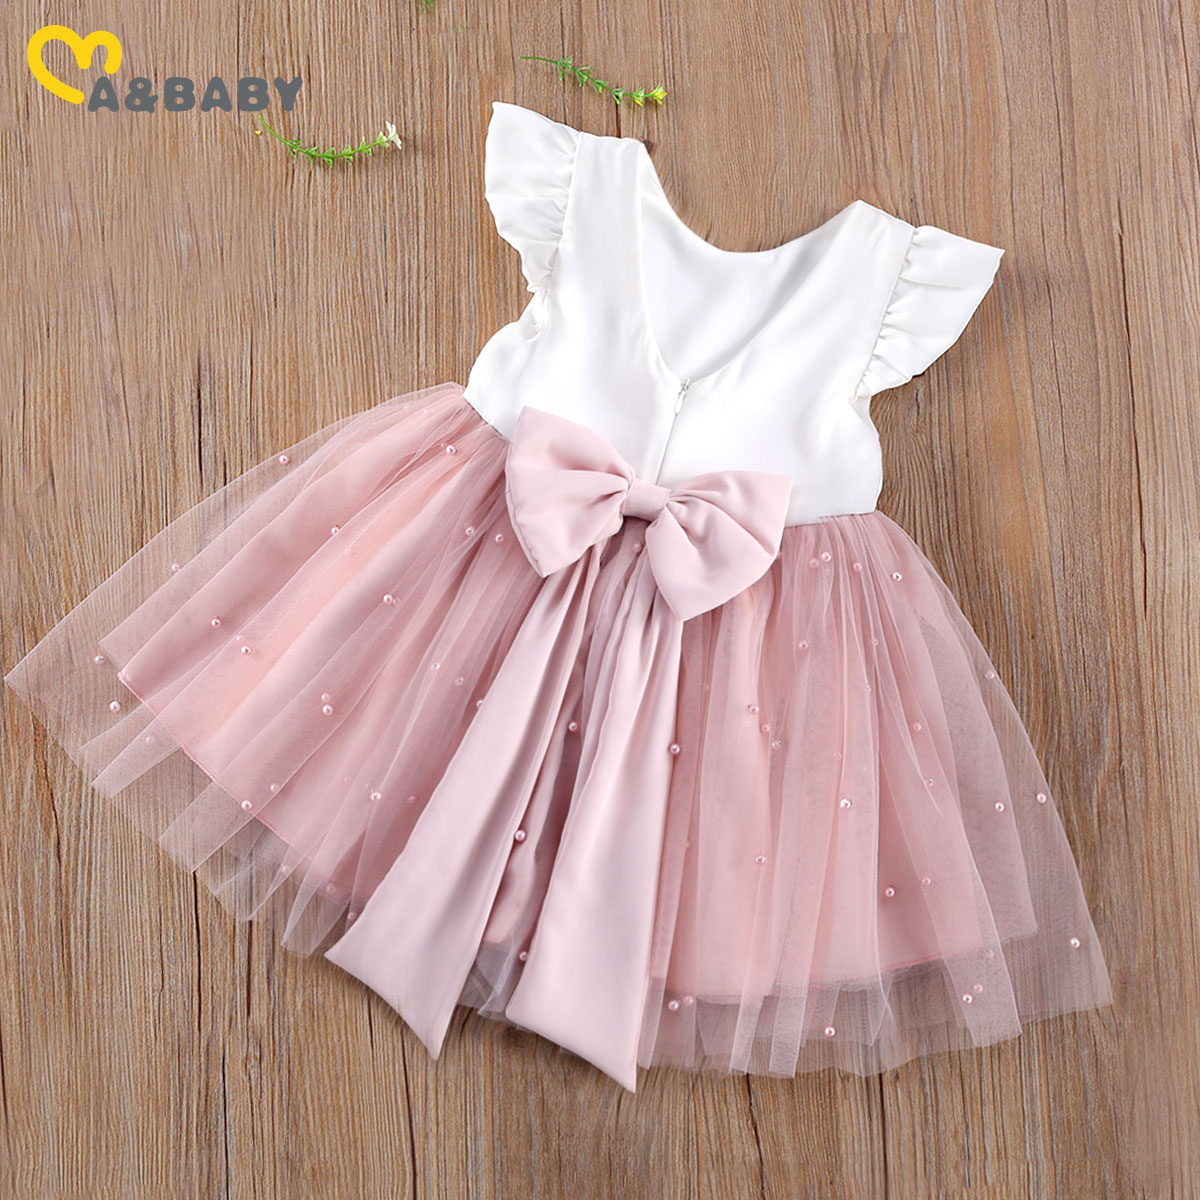 aliexpress - Ma&Baby 6M-5Y Princess Toddler Kid Child Girl Tutu Dress Pearl Tulle Party Wedding Birthday Valentines Day  Dresses For Girls